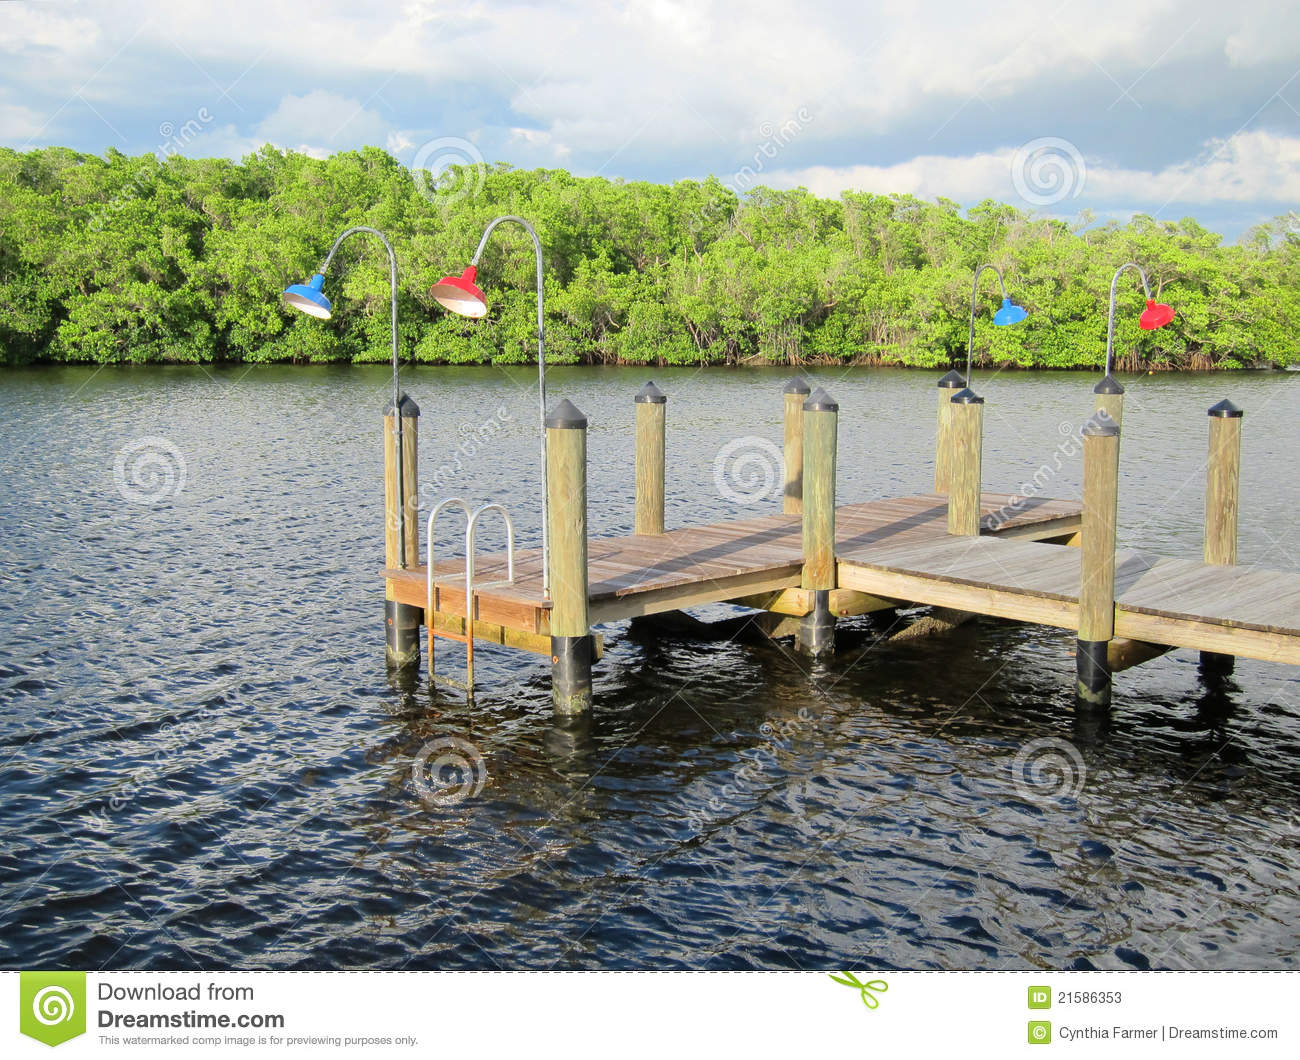 Old Wooden Boat Dock By An Inlet Stock Image - Image: 21586353